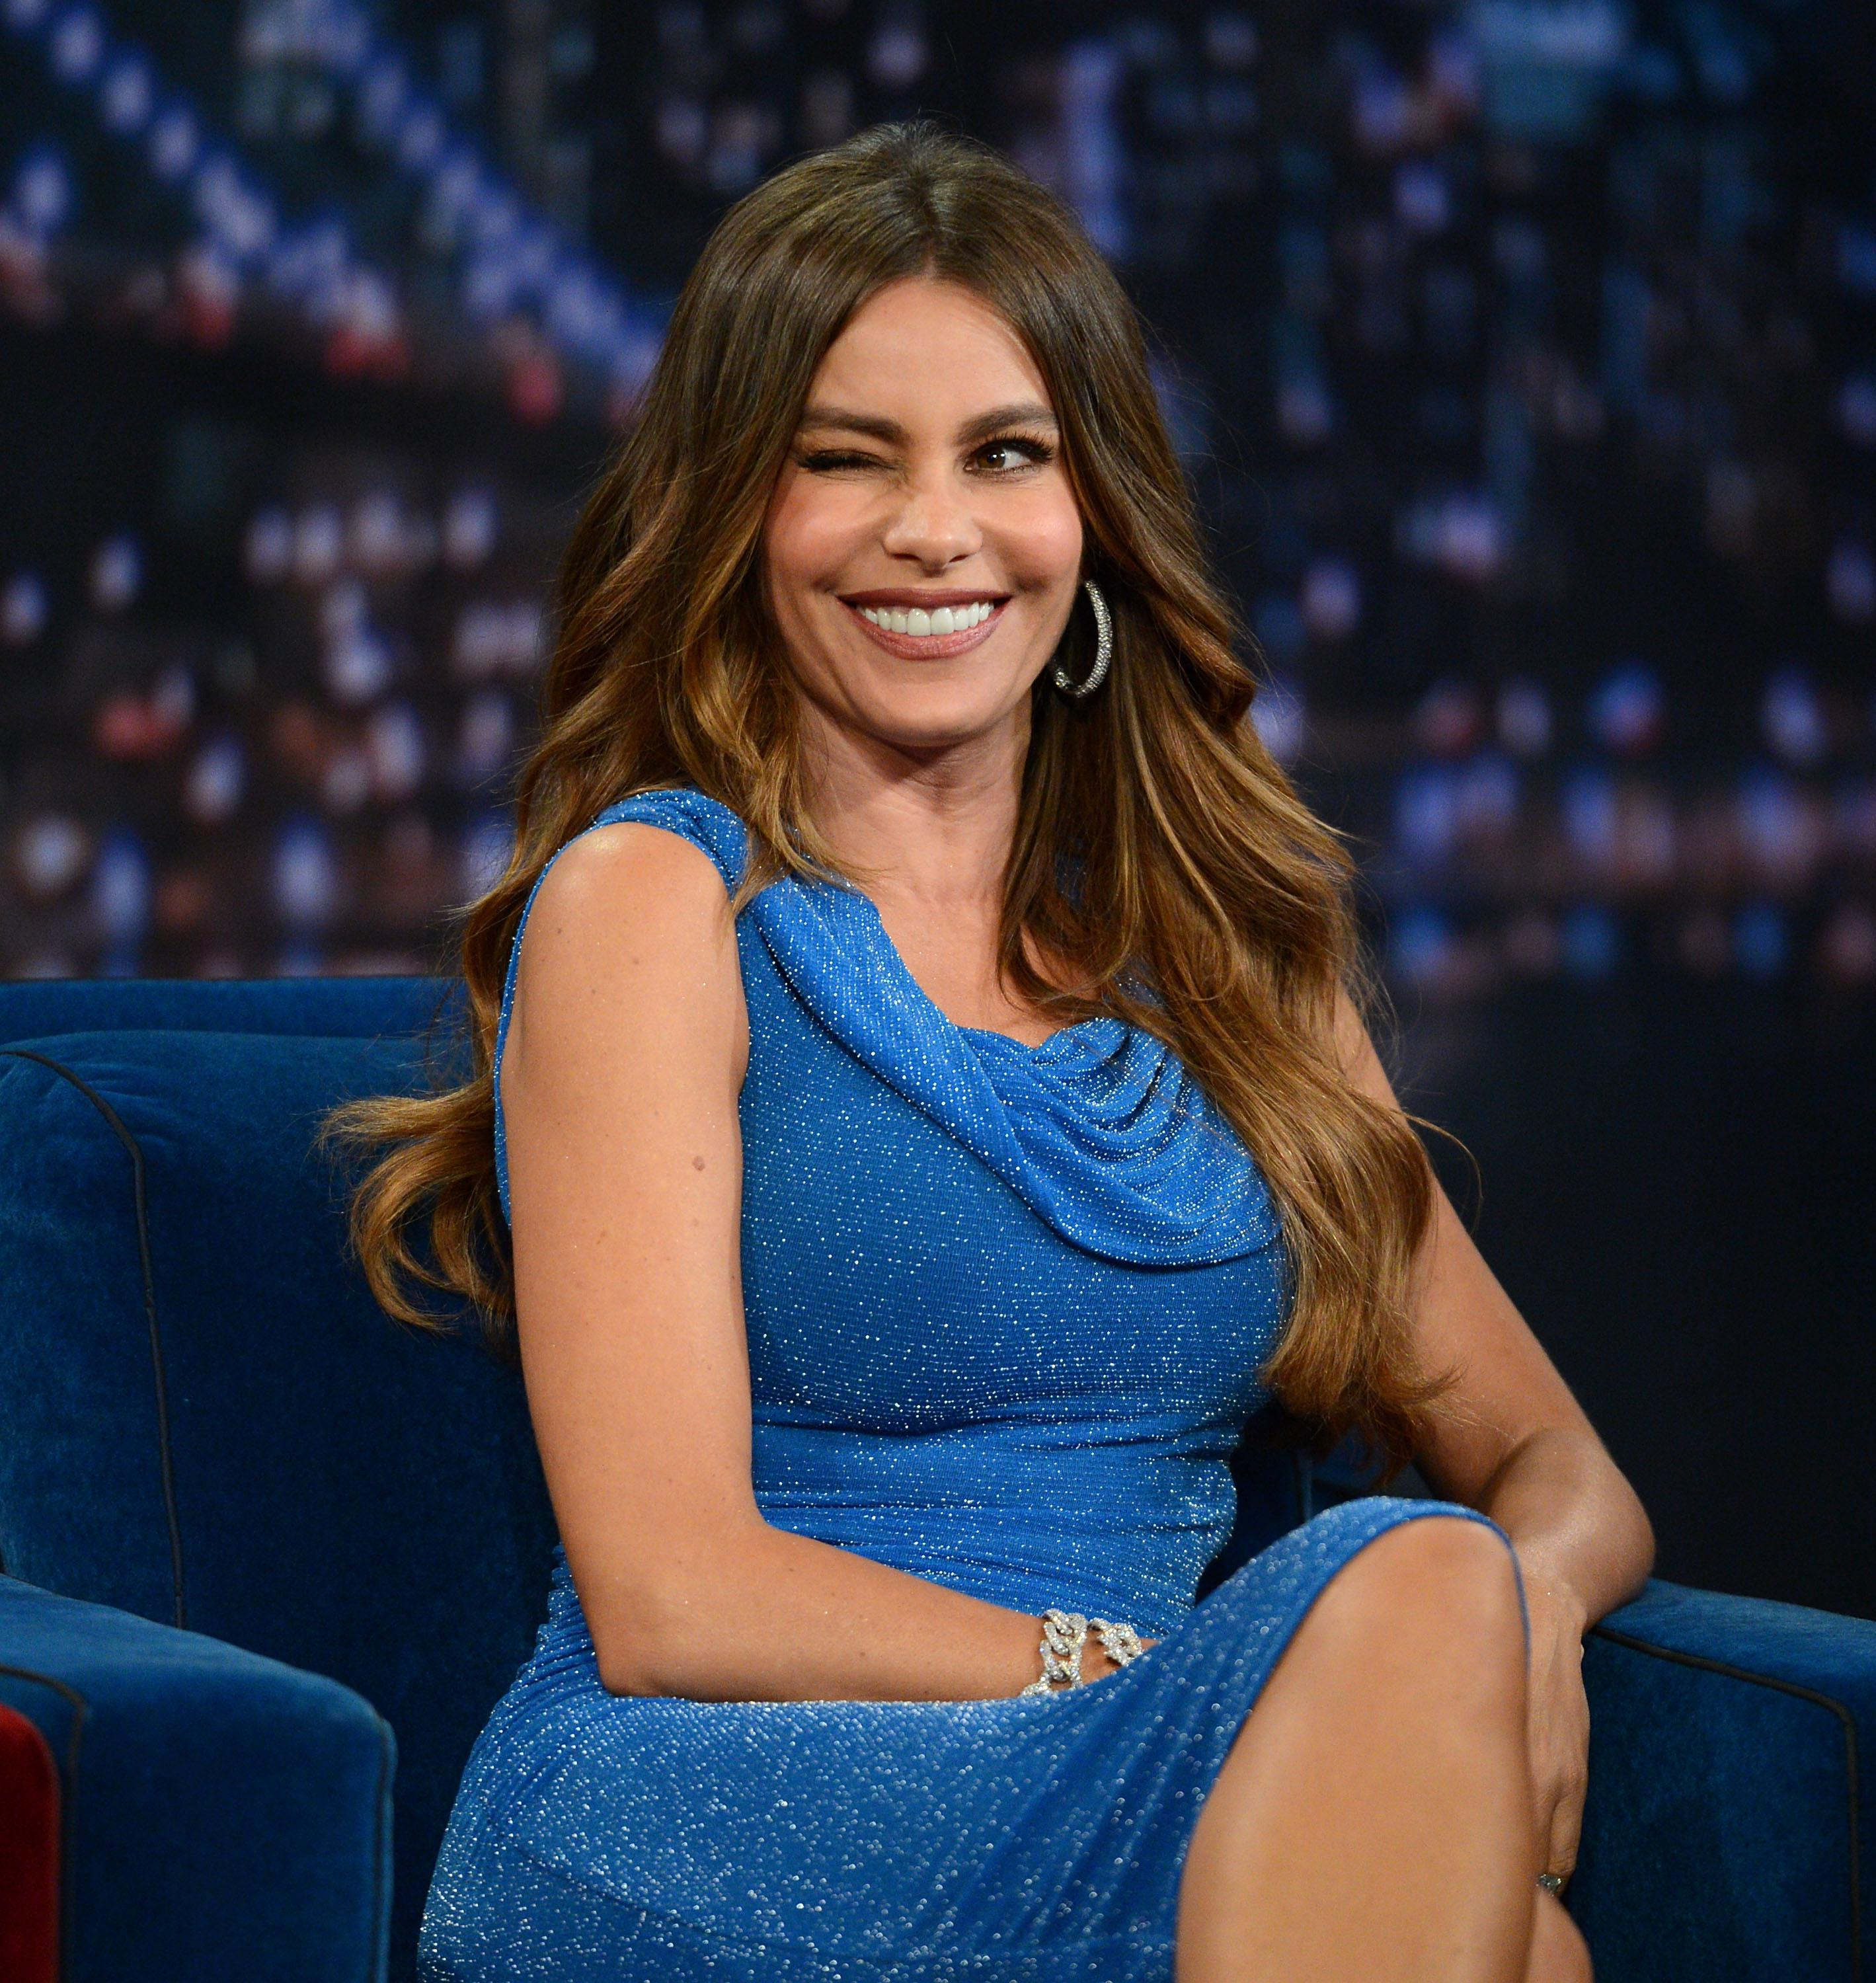 Sofia Vergara Visits 'Late Night With Jimmy Fallon'